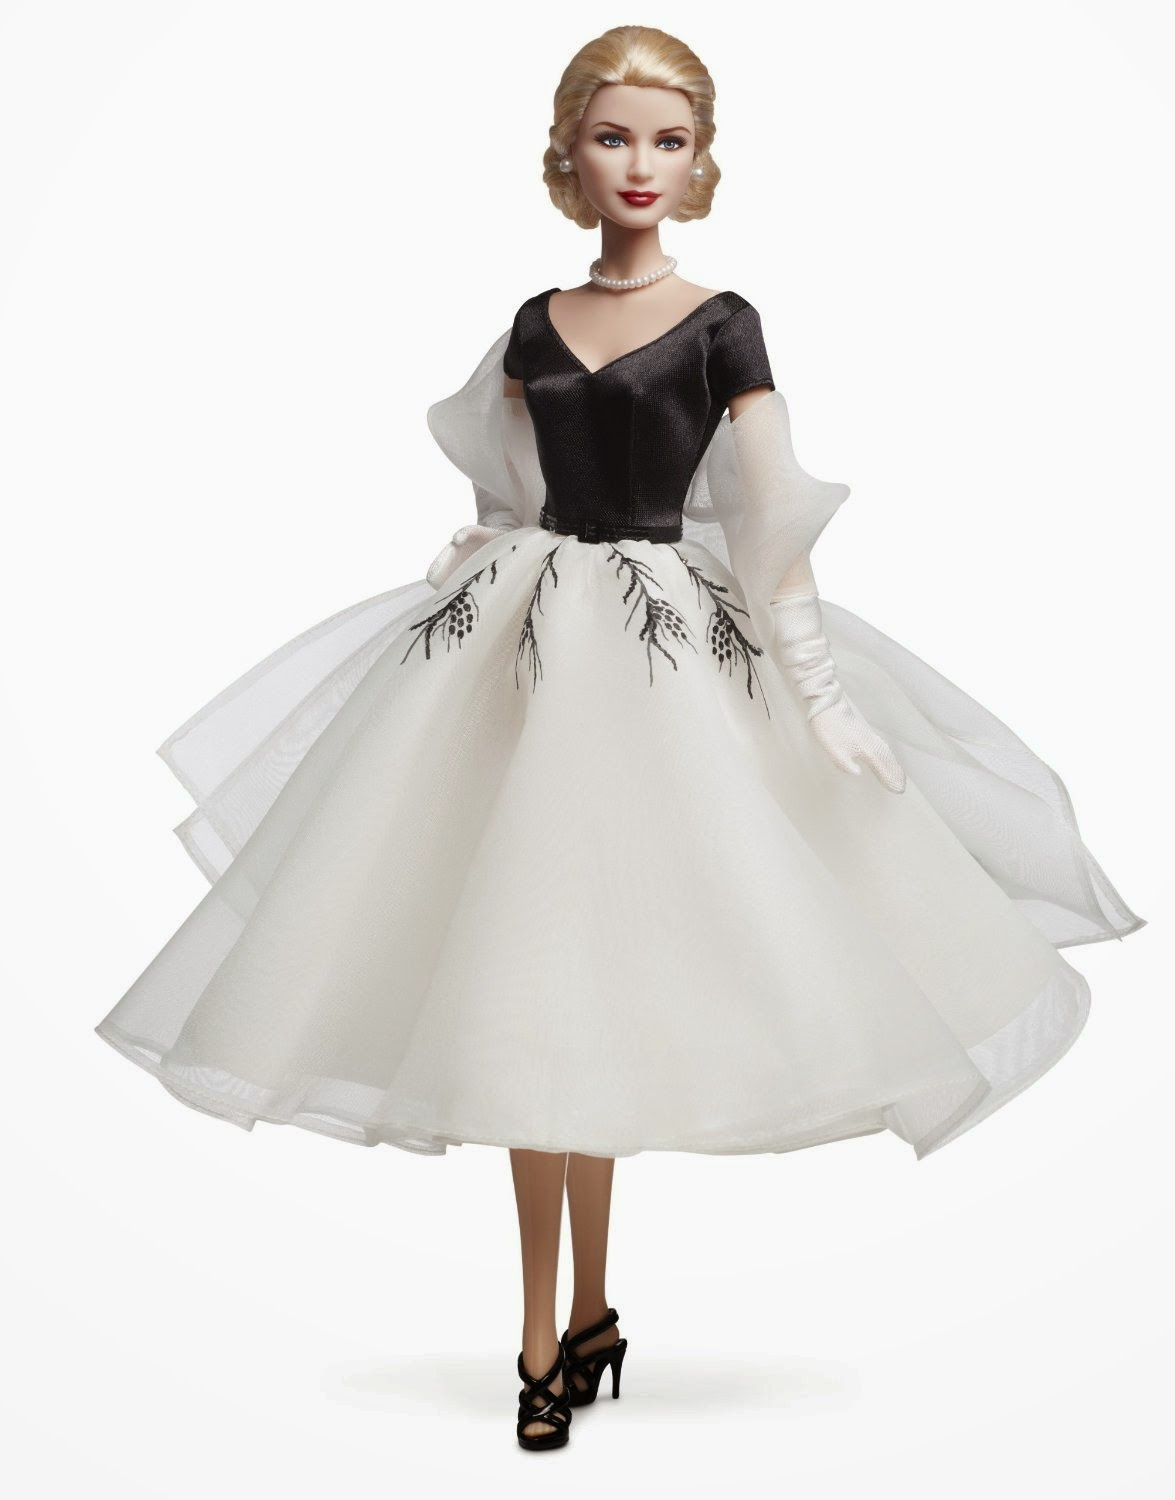 Barbie - Grace Kelly